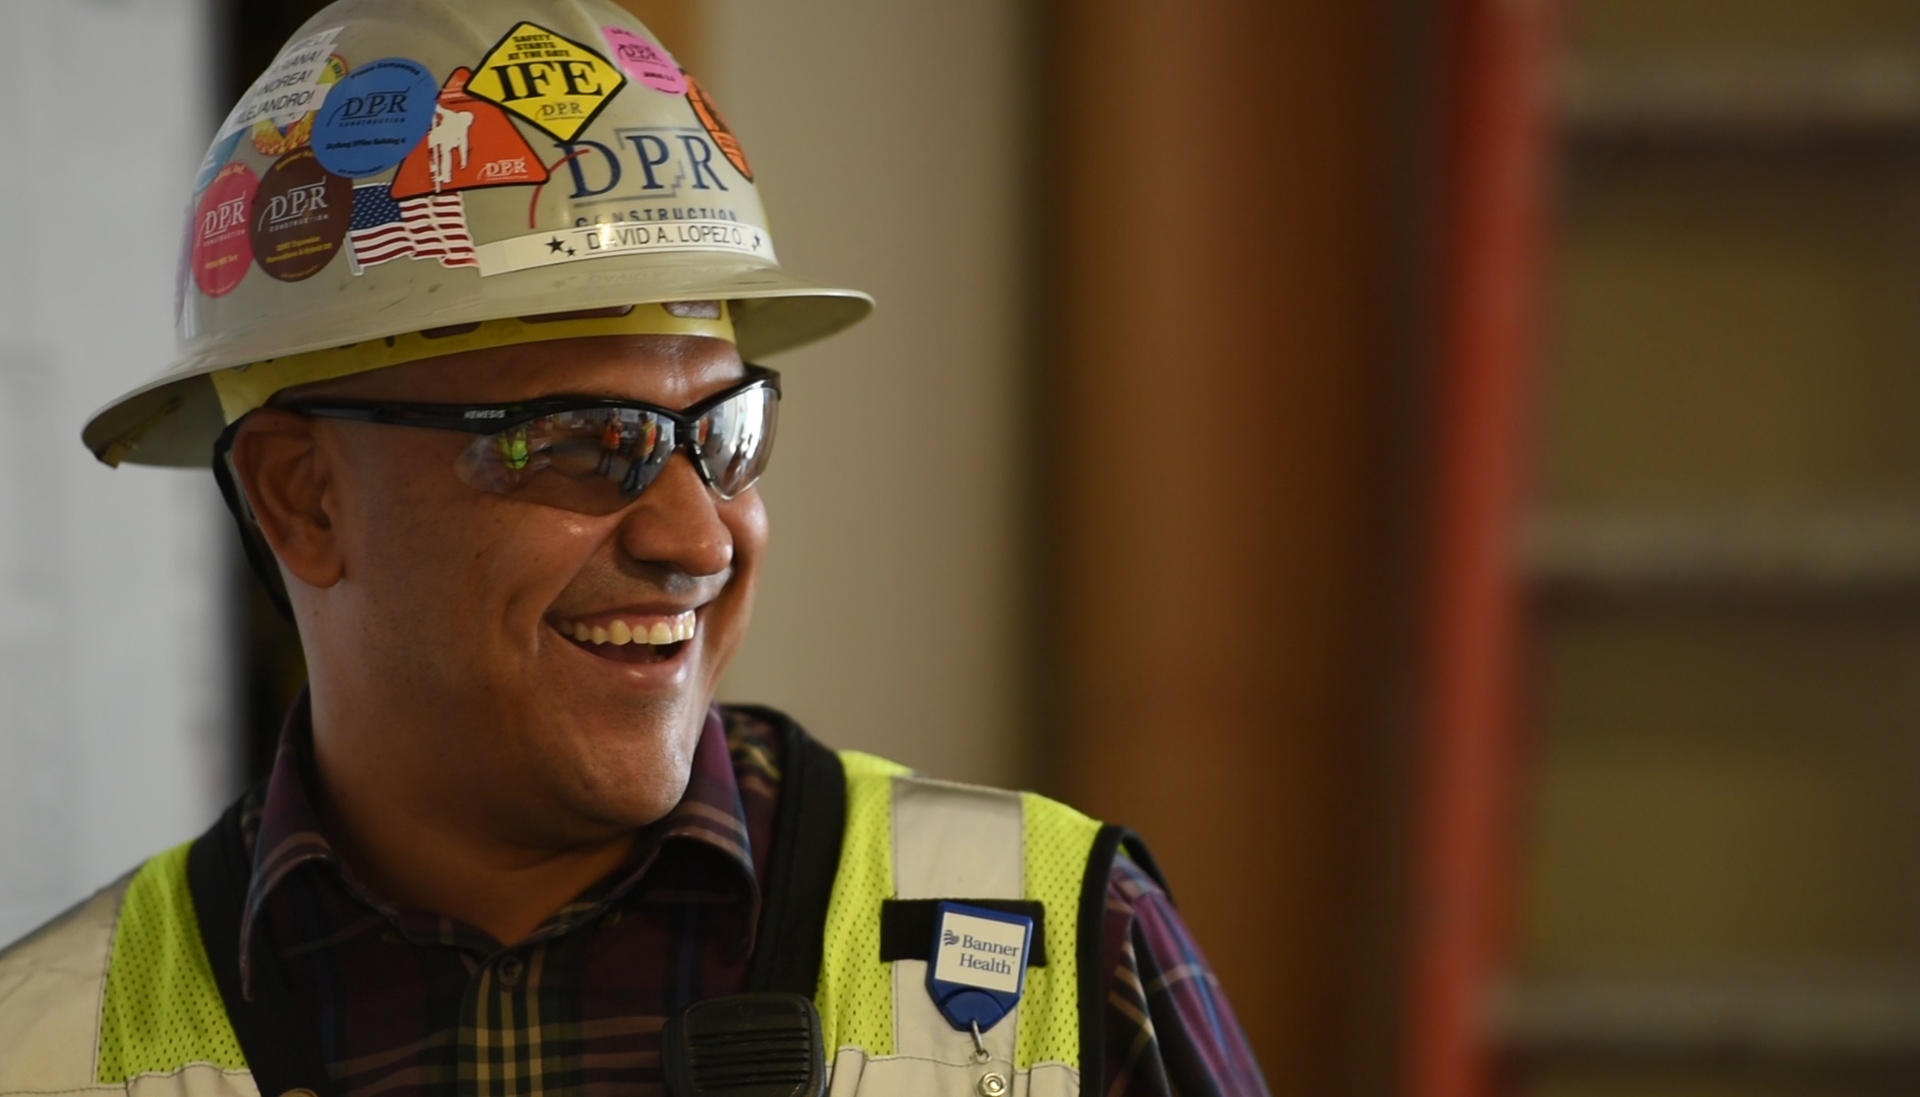 David Lopez laughing on his job site.